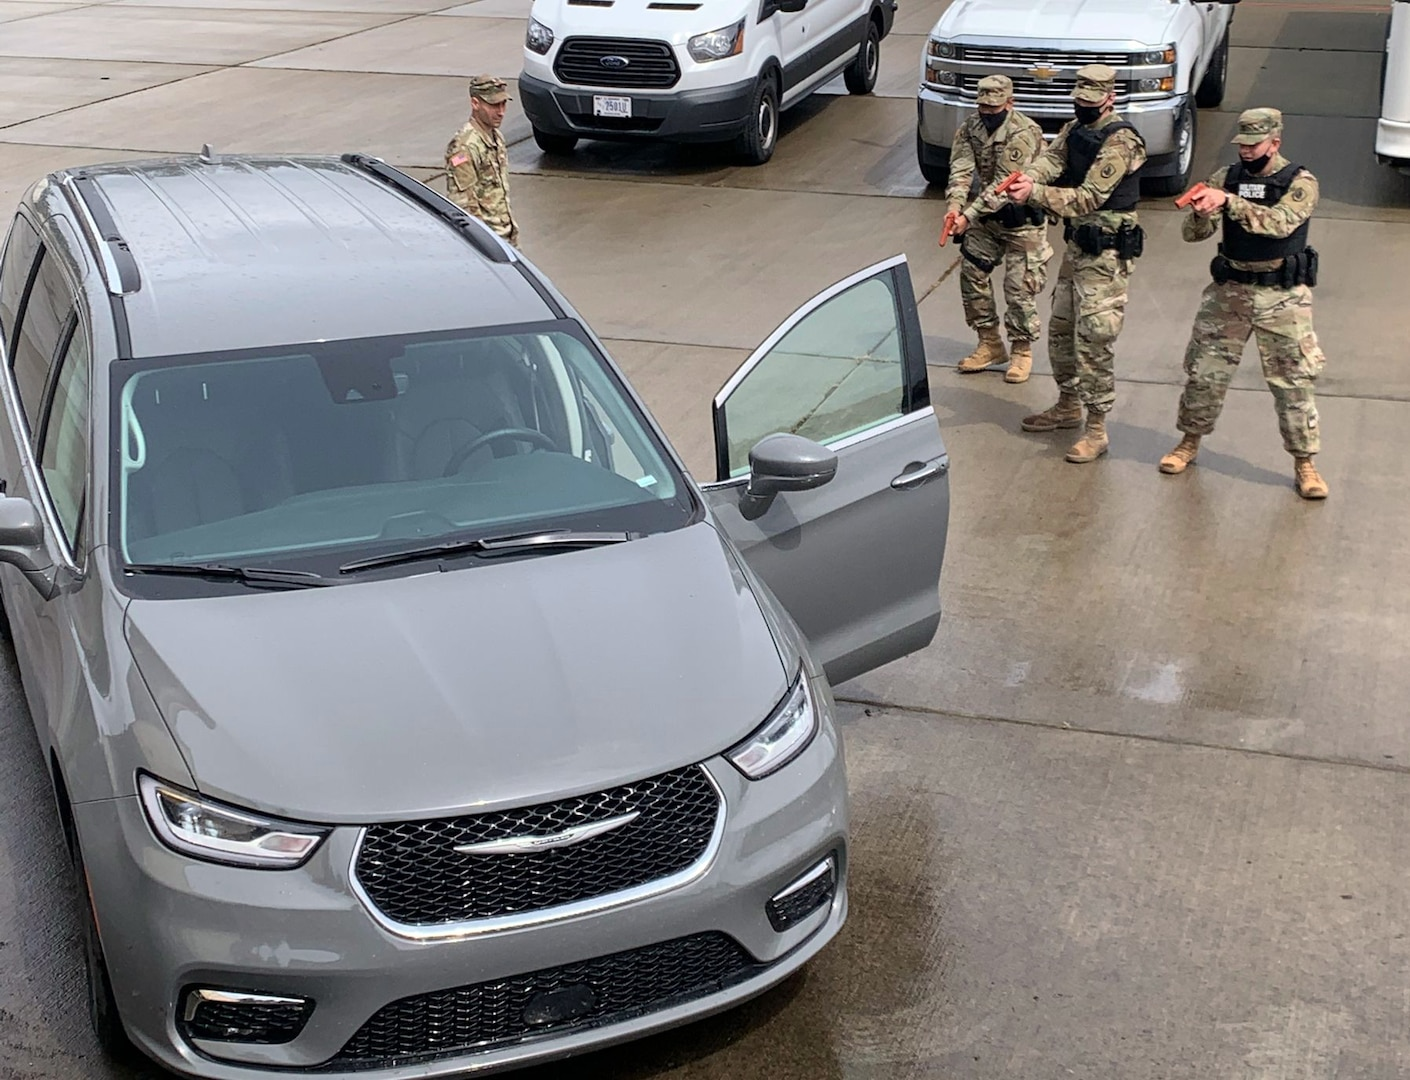 Washington National Guard Soldiers with the 506th Military Police train on a high-risk traffic stop as part of their annual training June 14, 2021, at Camp Murray, Wash. The 506th Military Police focused annual training this year on developing the skills of newer Soldiers.